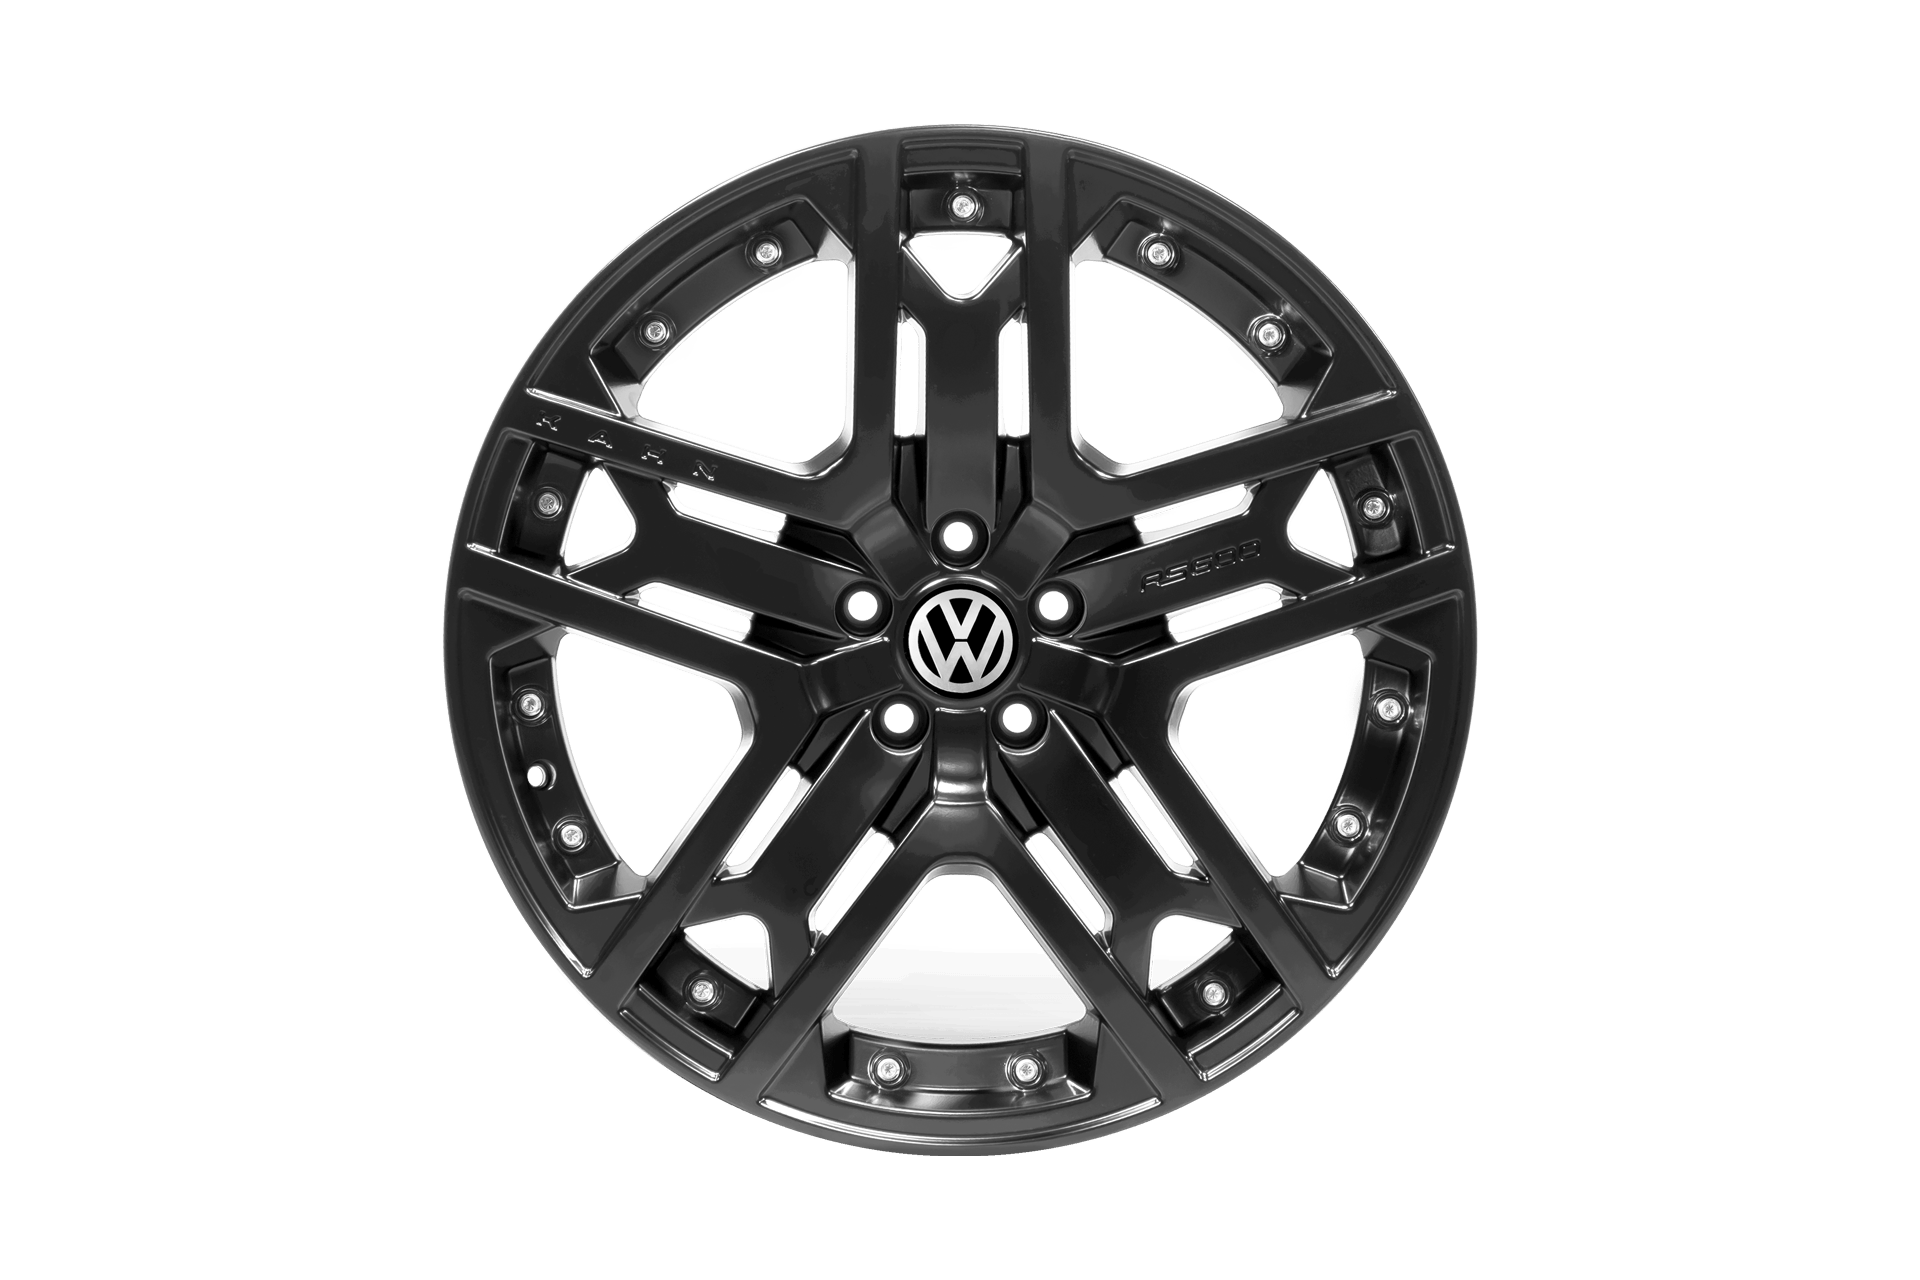 Volkswagen T6 (2015-Present) Rs600 Light Alloy Wheels by Kahn - Image 3053